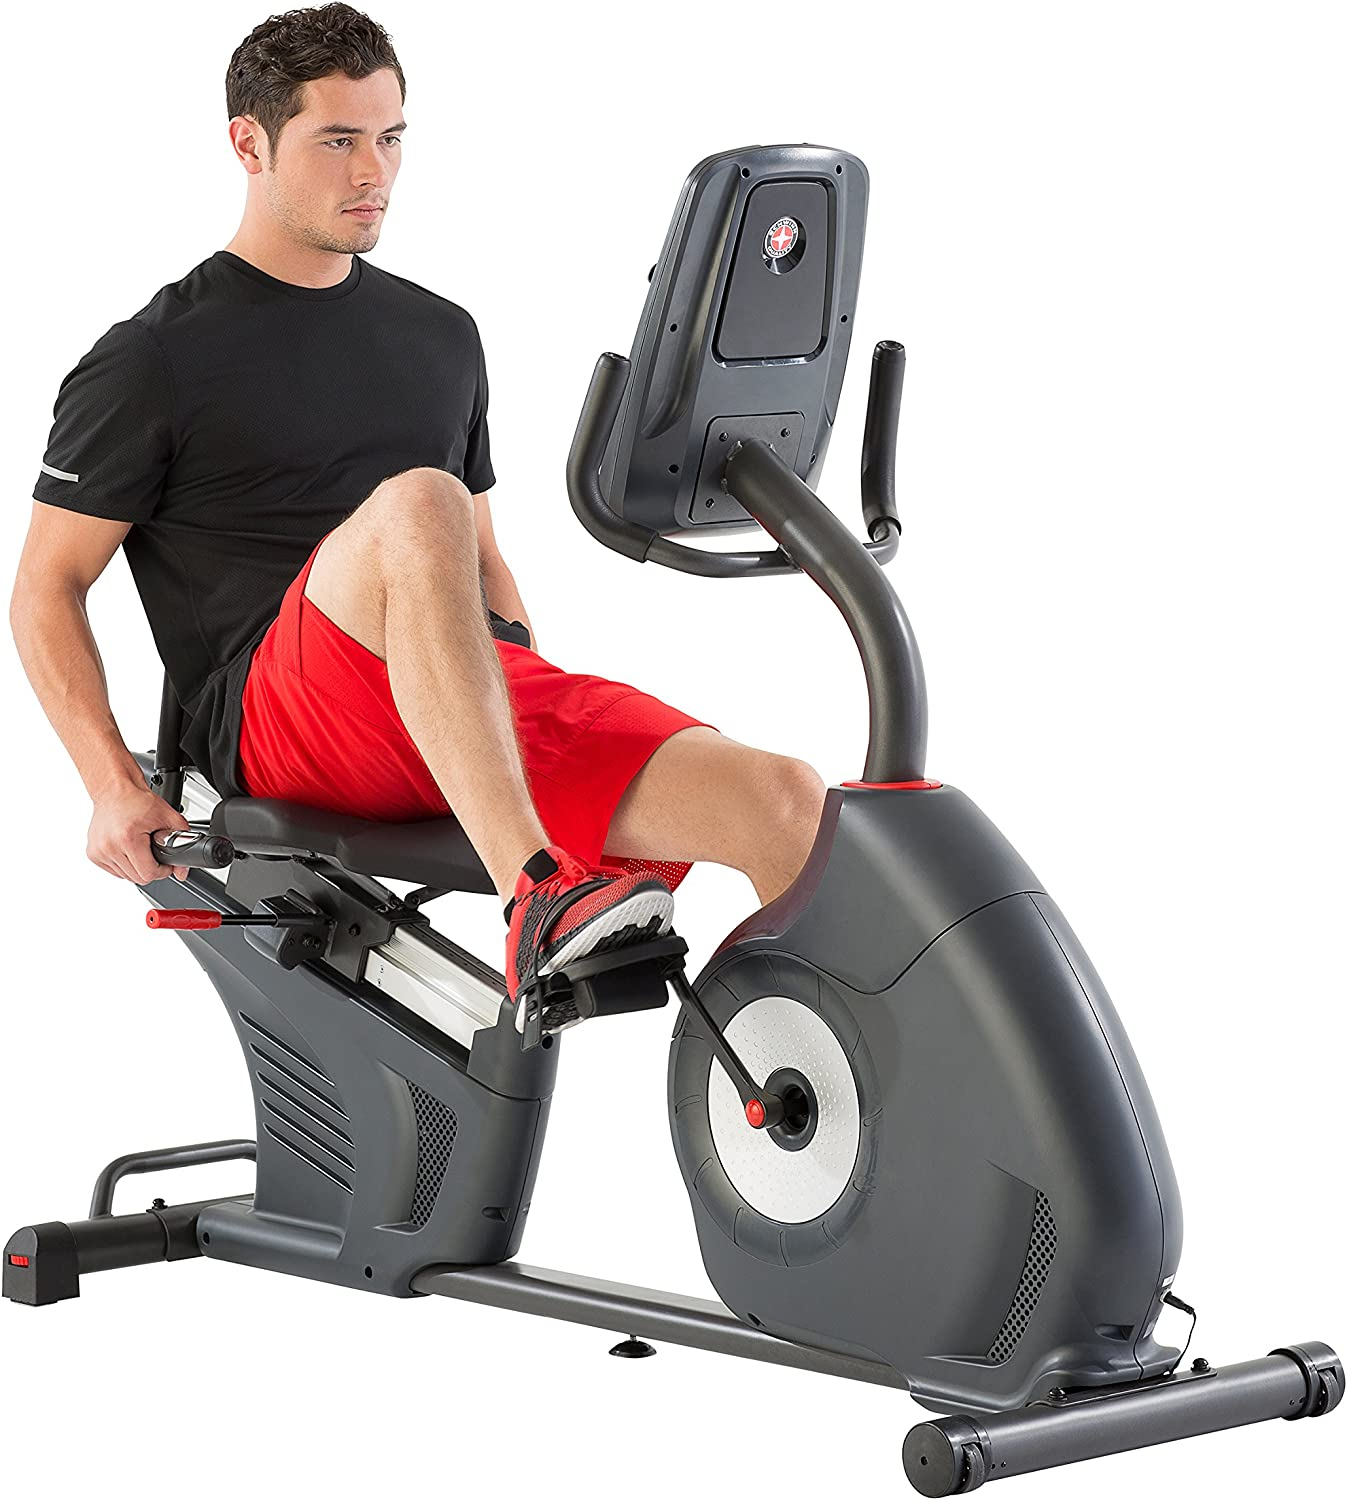 Schwinn Exercise Bike reviews of 2020 - Top 3 Model 2